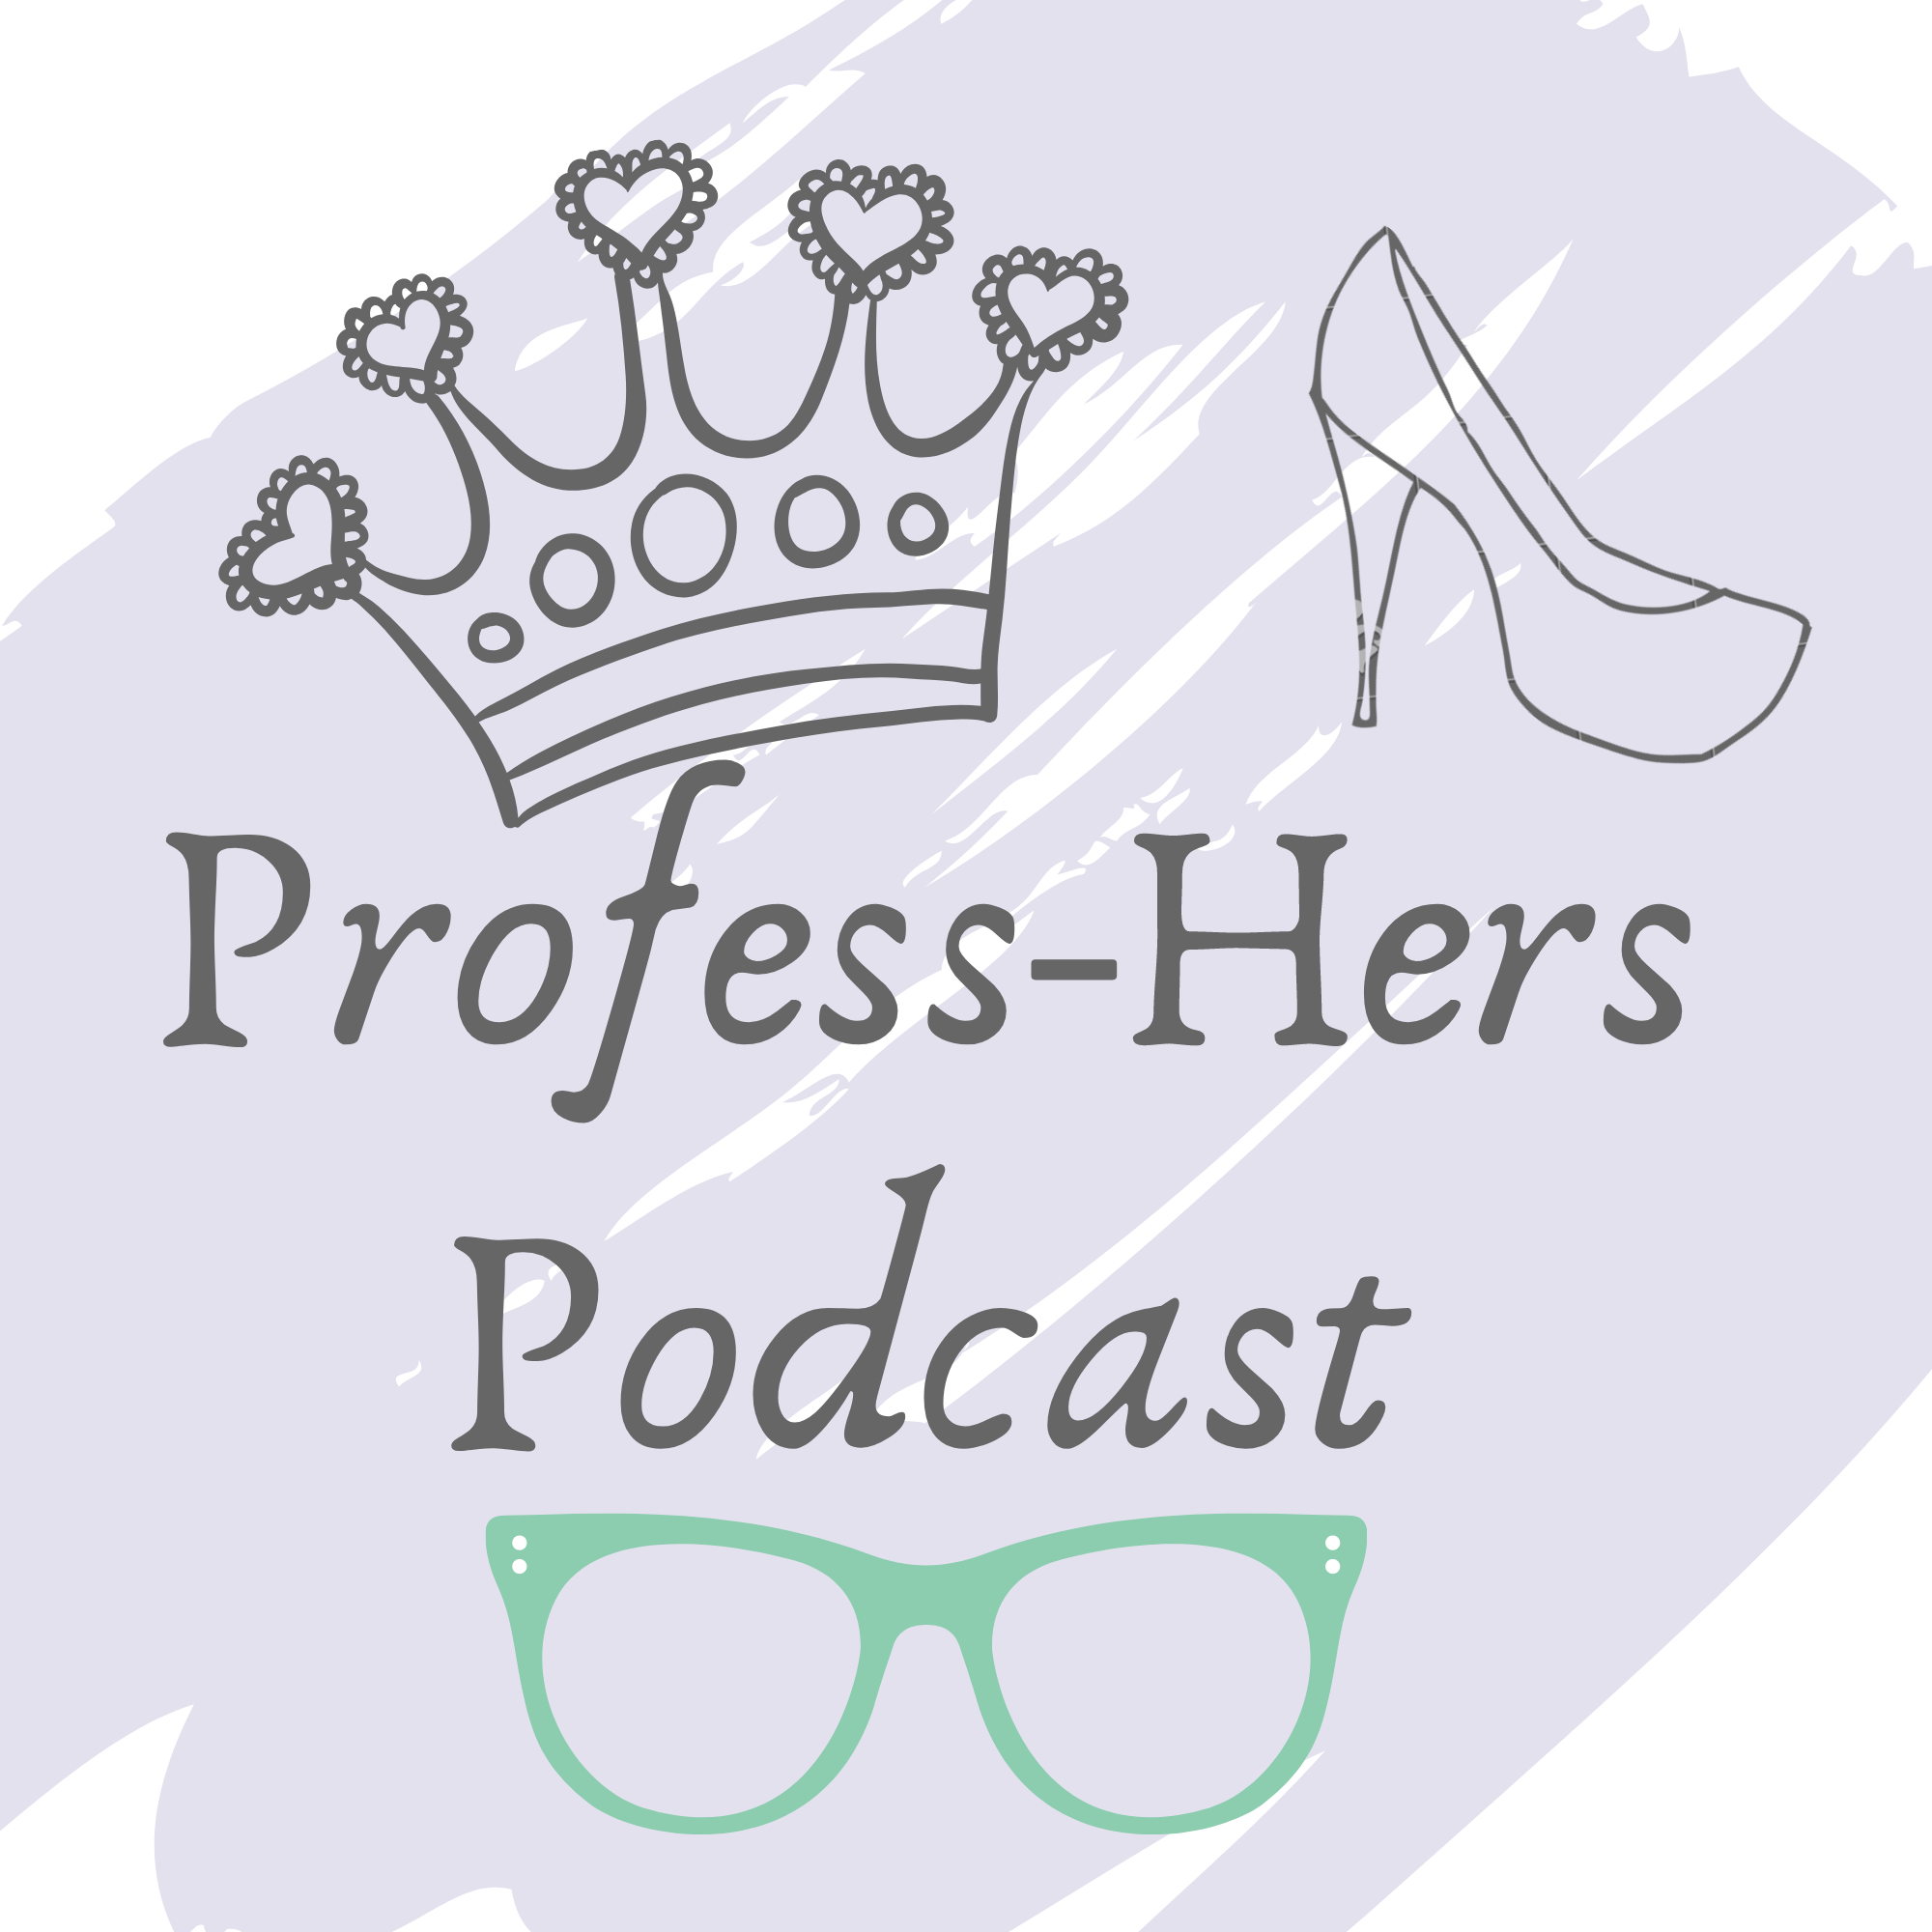 The Profess-Hers Podcast